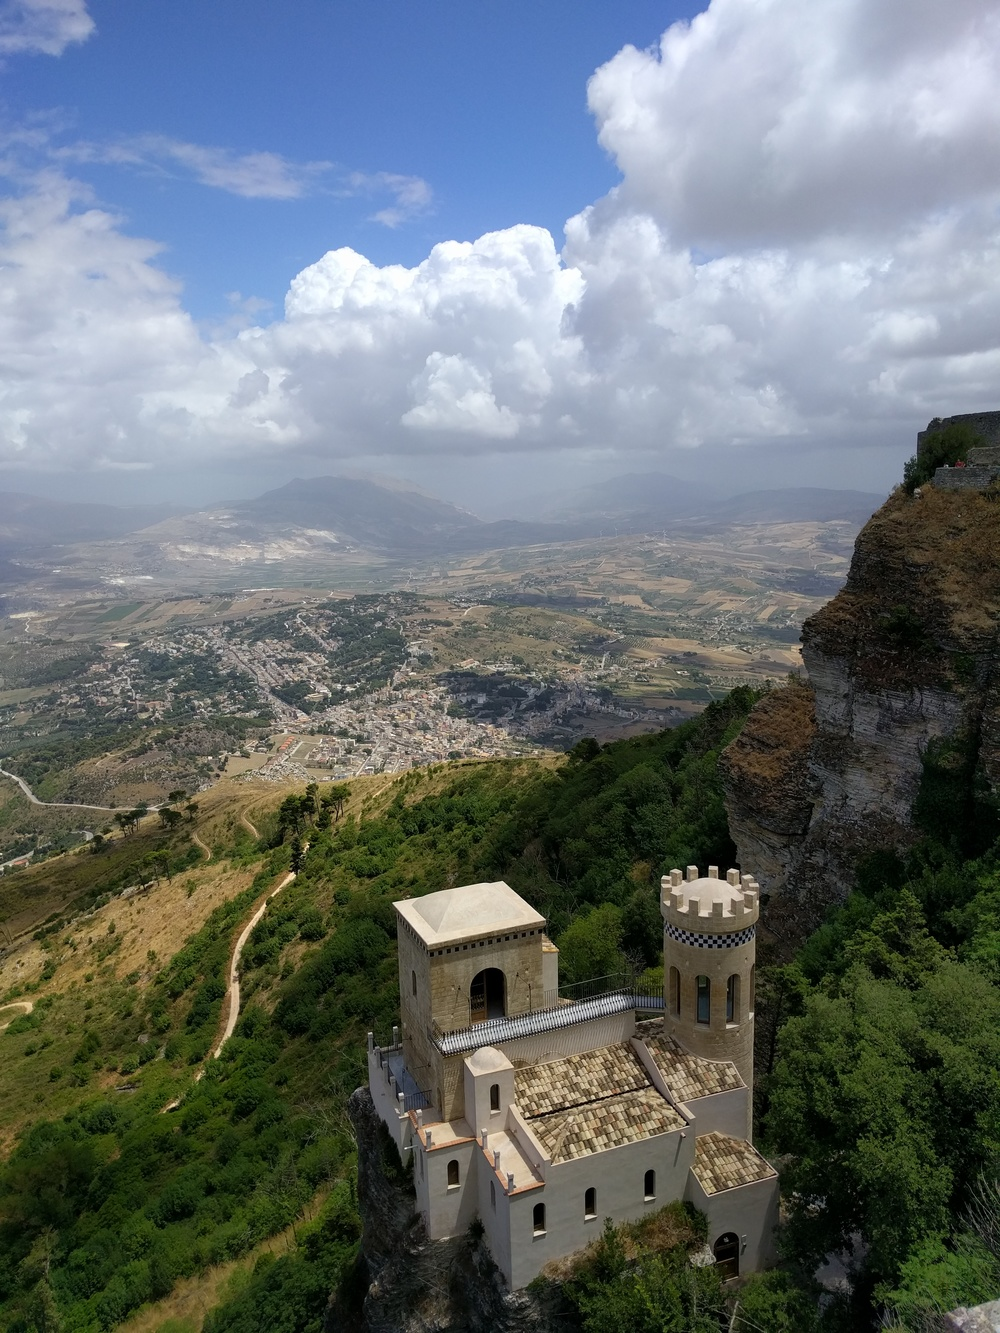 The view from Erice in Western Sicily